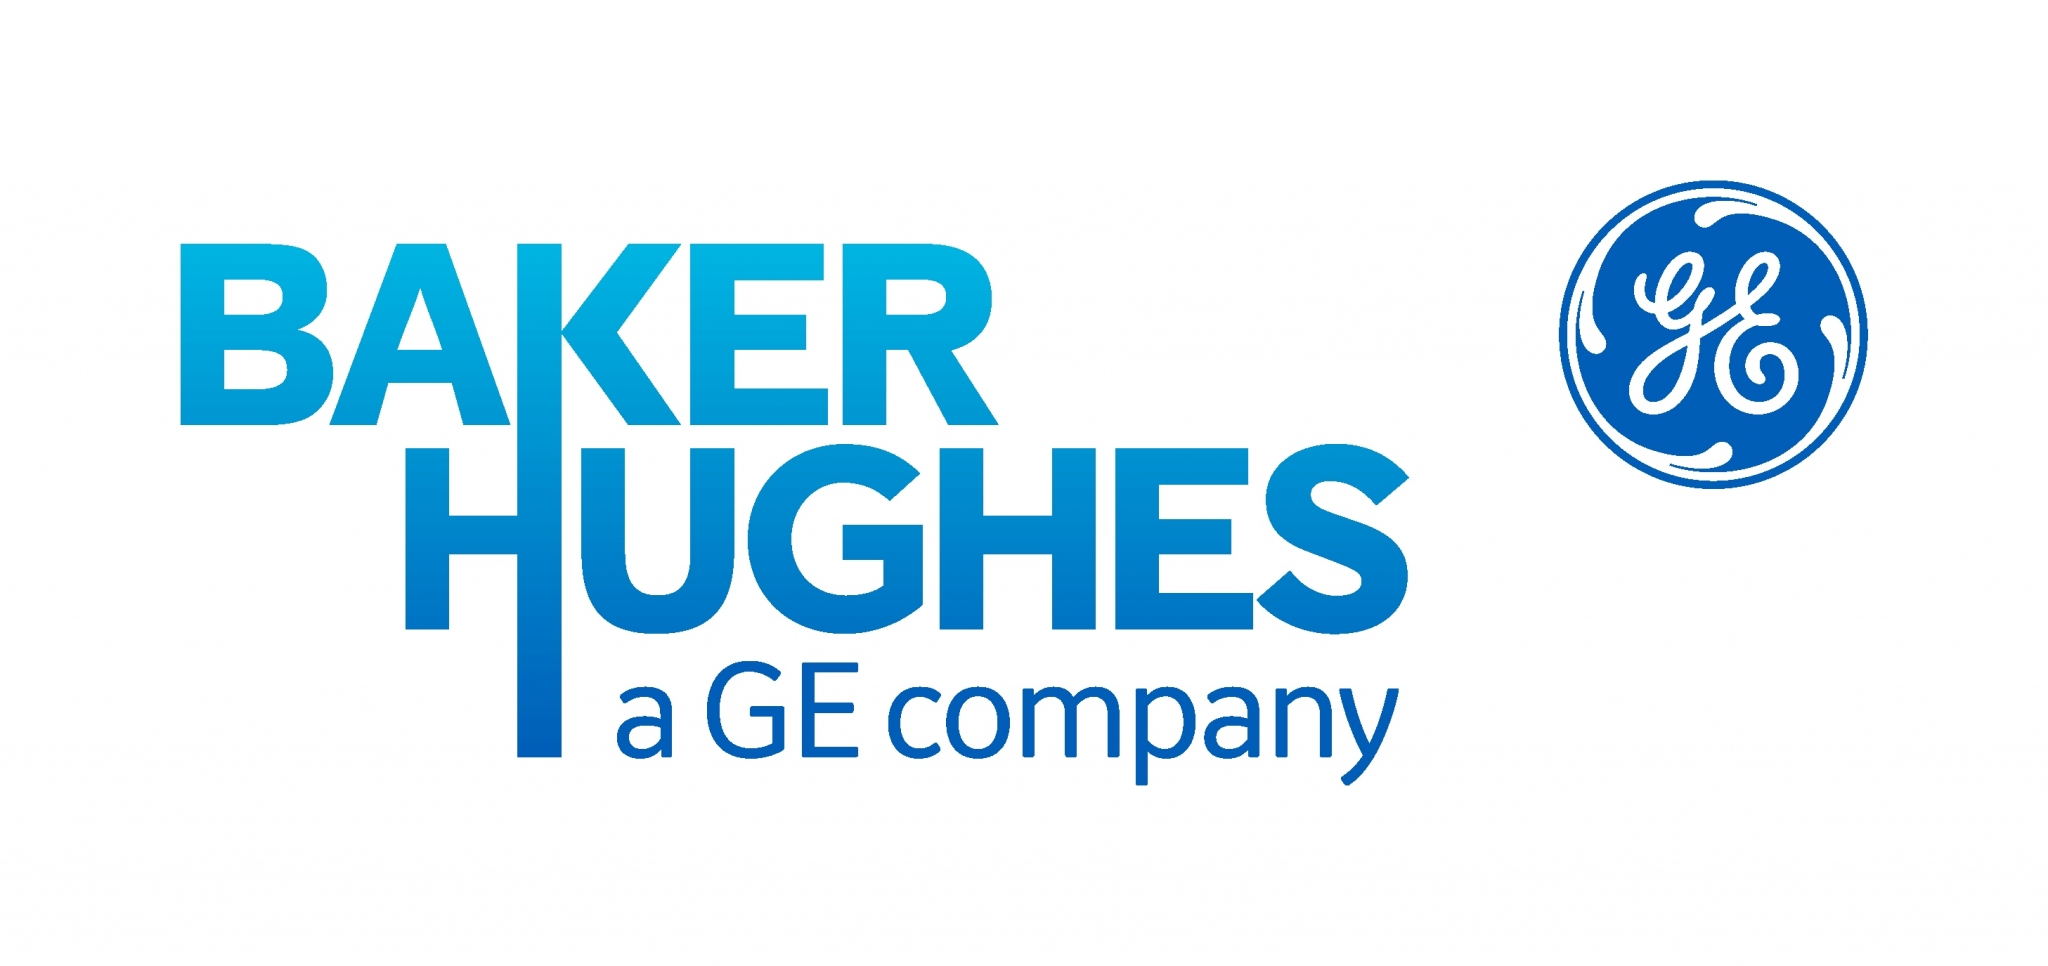 Baker Hughes and GE merger closes, creates No. 2 oilfield services ...